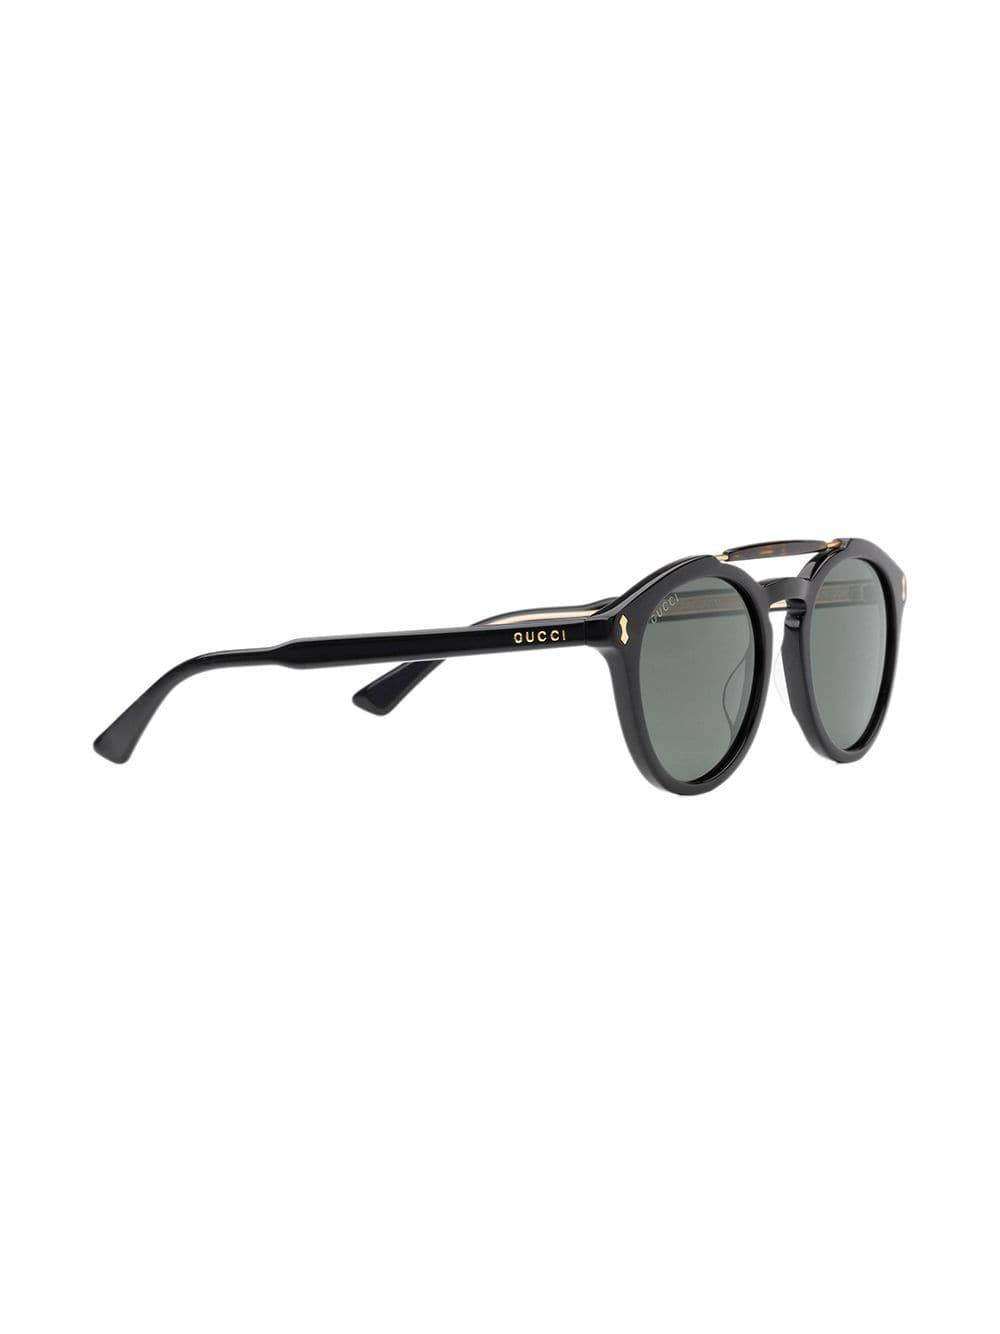 6df6fbbca931d Lyst - Gucci Round-frame Acetate Sunglasses in Black for Men